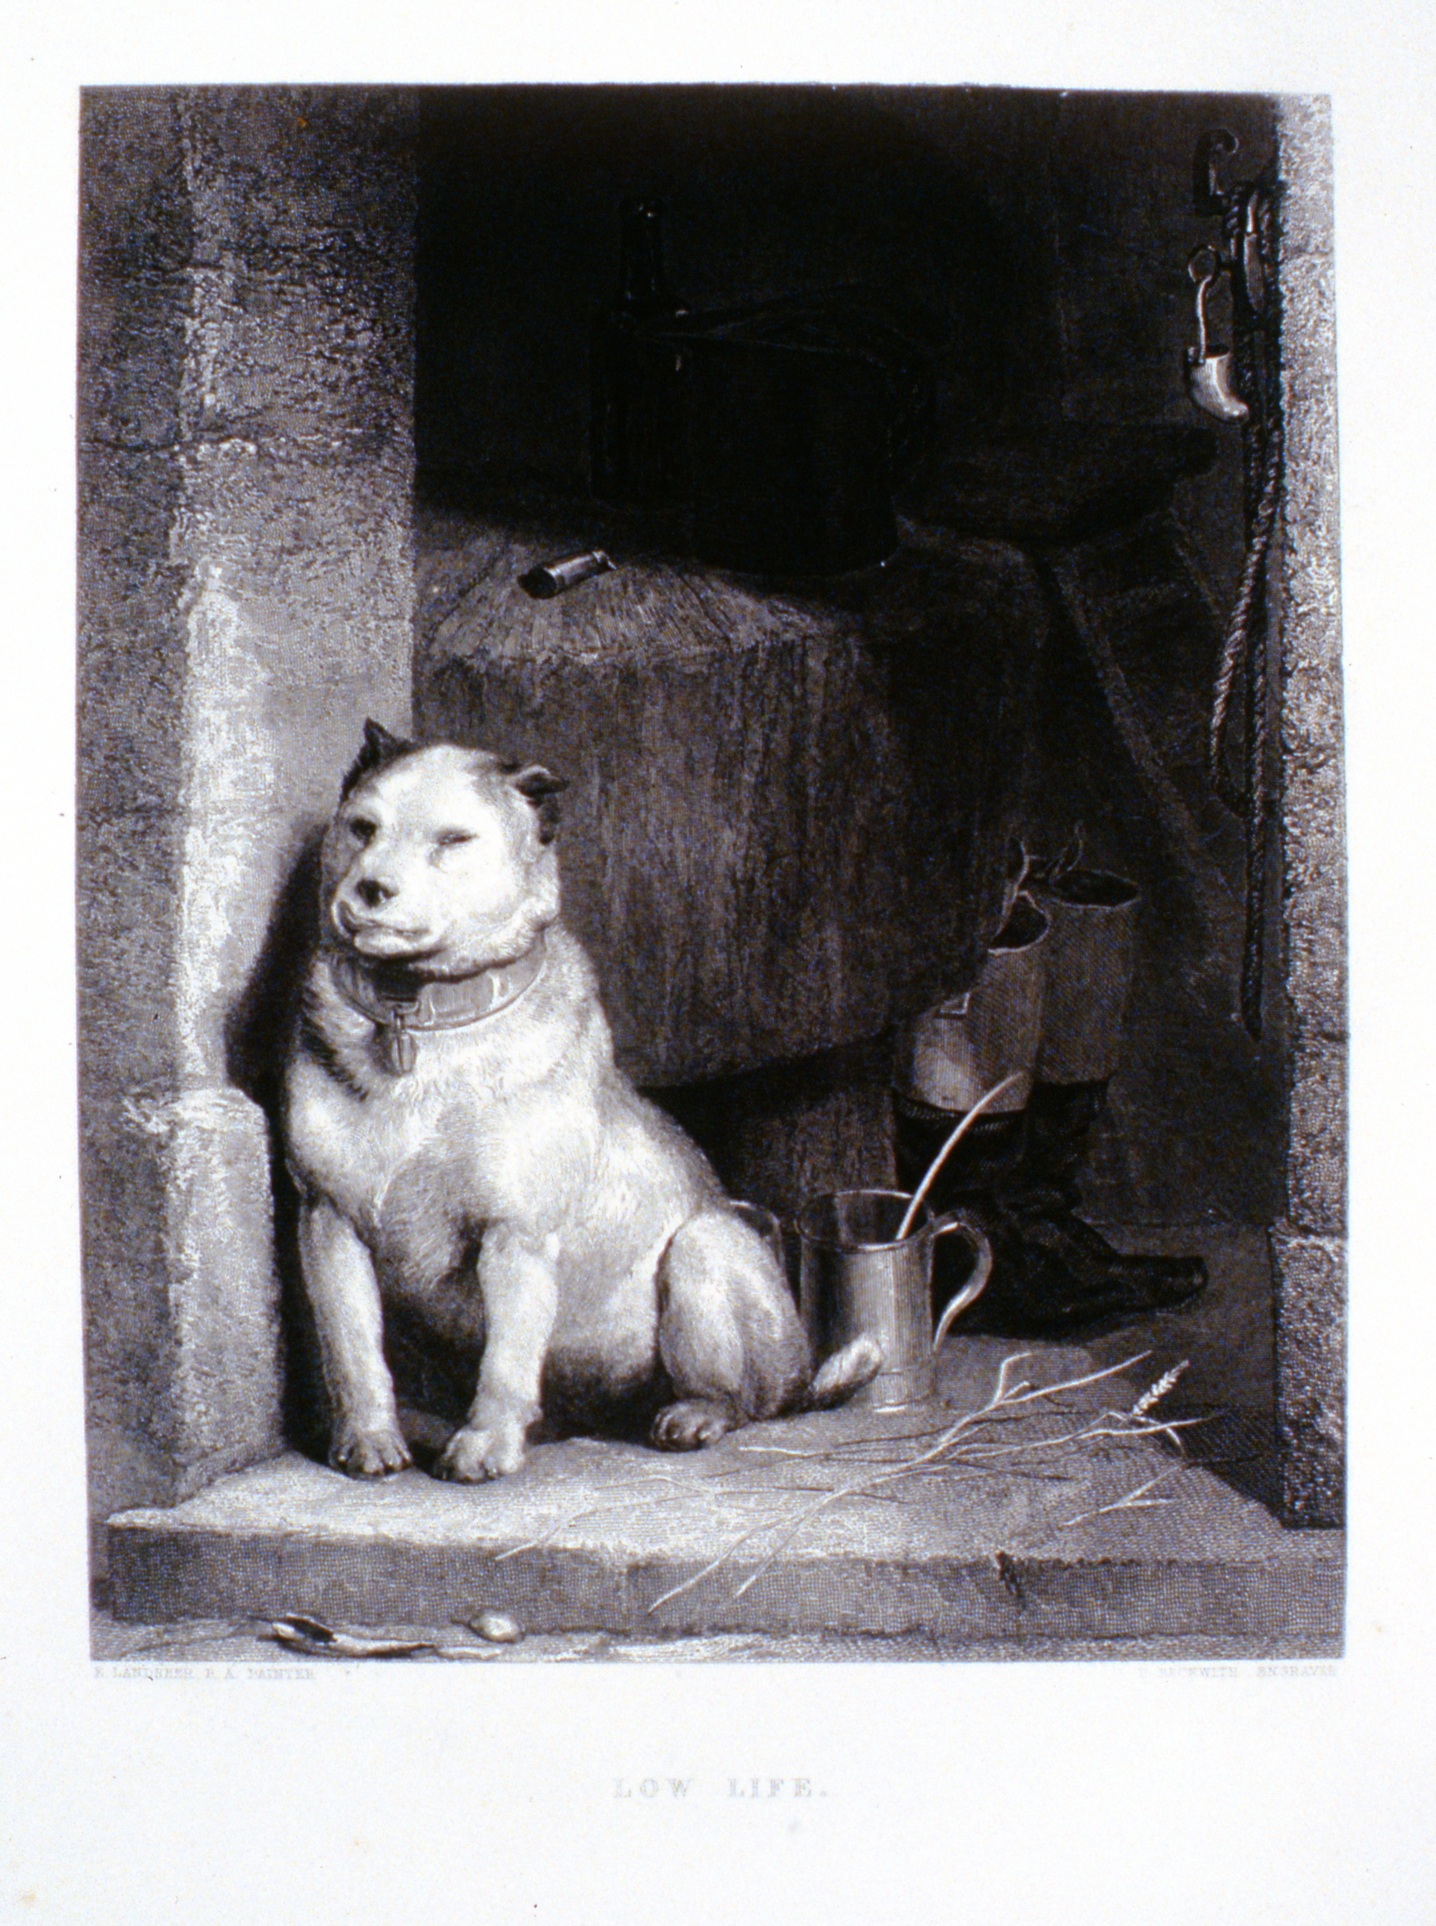 Low Life , c. late 19th Century, H. Beckwith, steel engraving, 23.6 cm x 18.7 cm, 1996.08.12, gift of Yvonne Adams